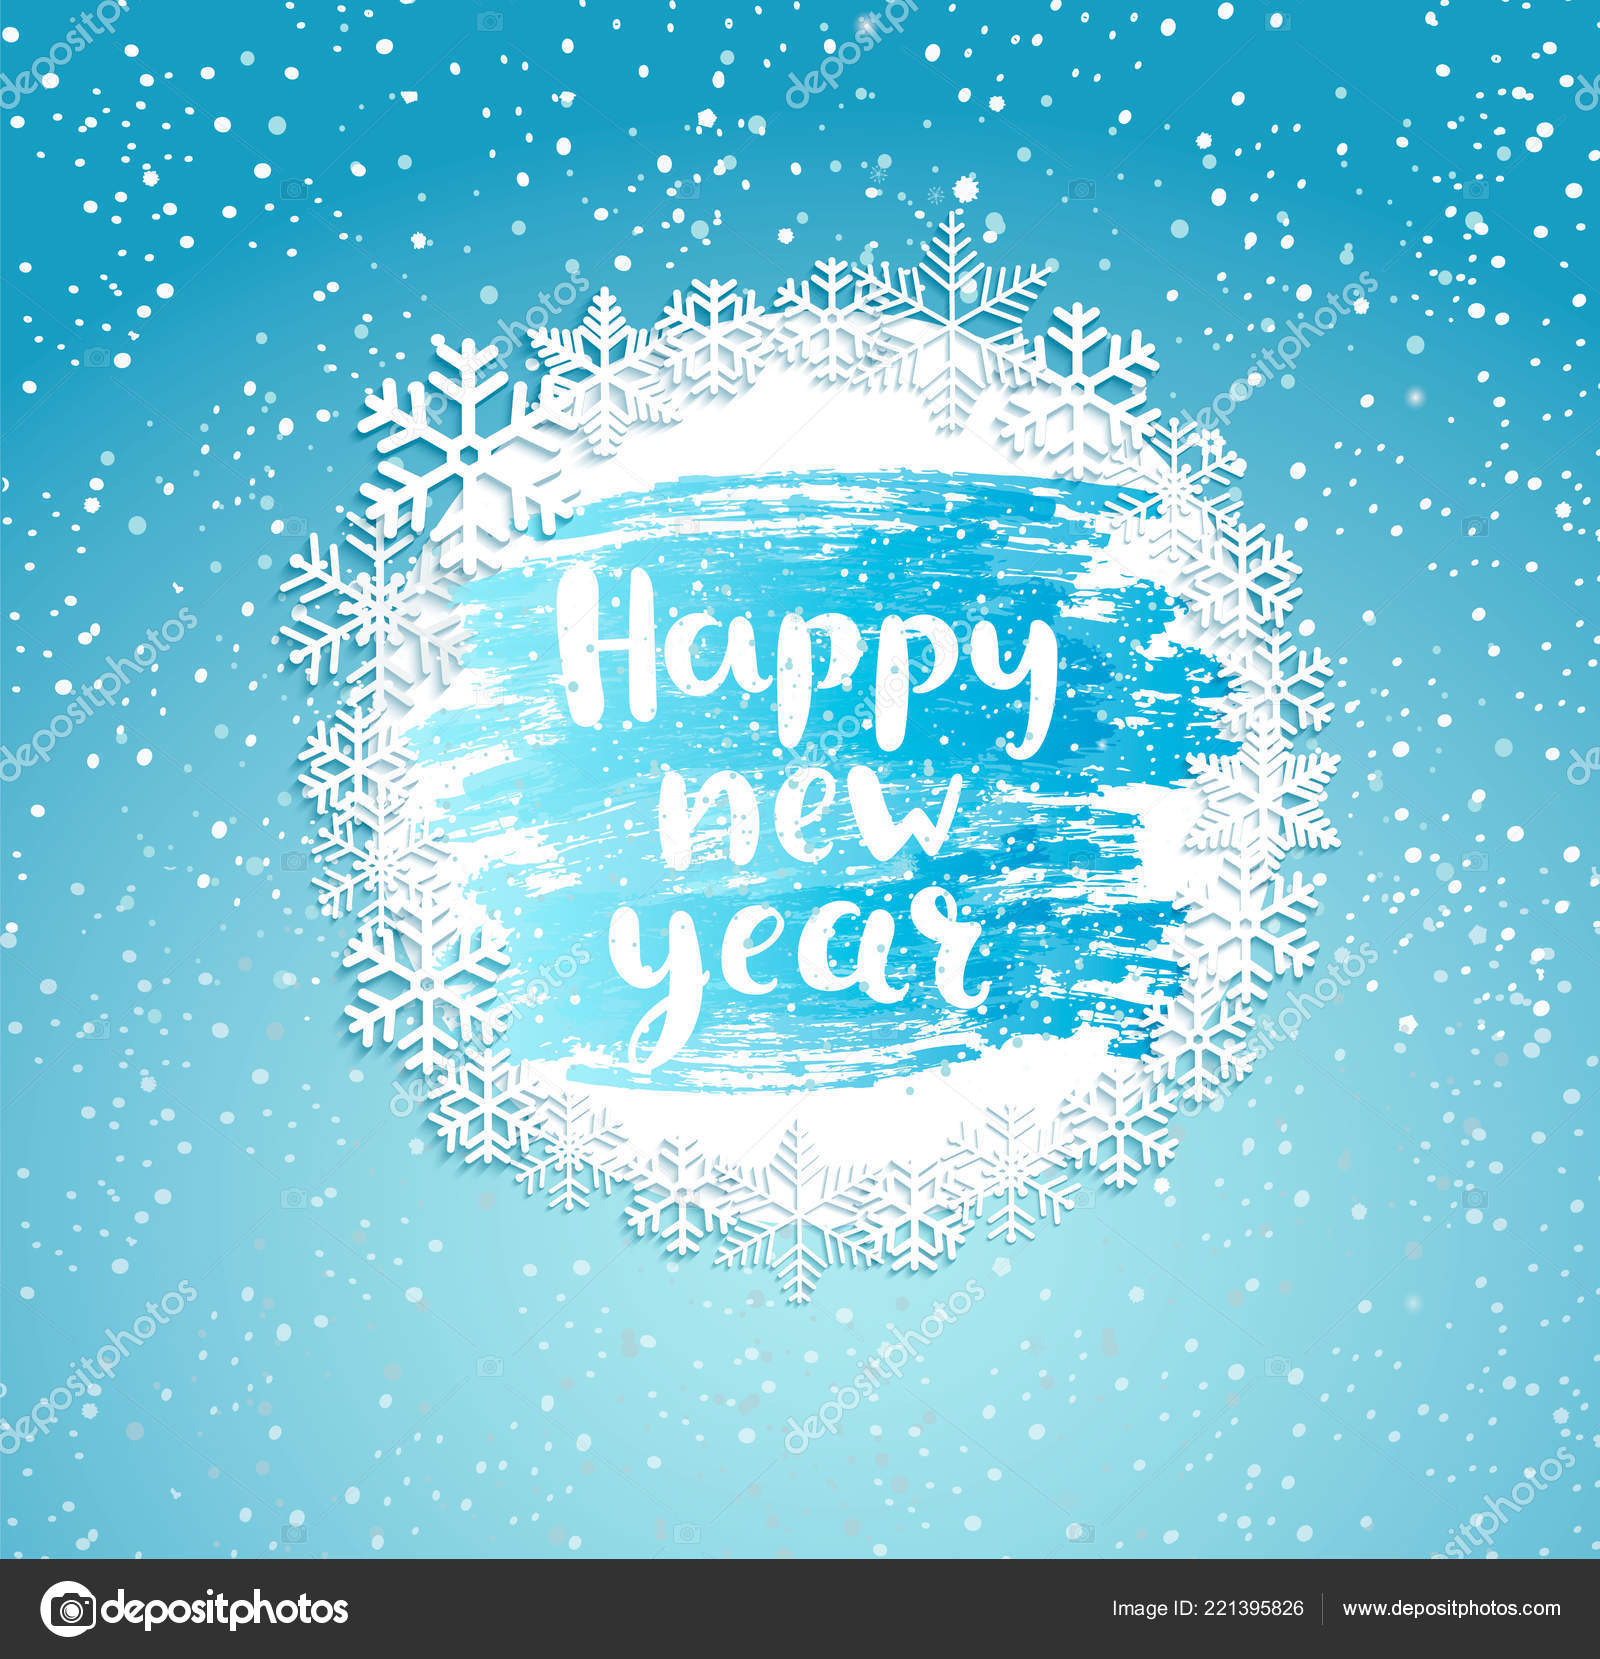 happy new year greeting card vintage frame snowflakes frosty window stock vector